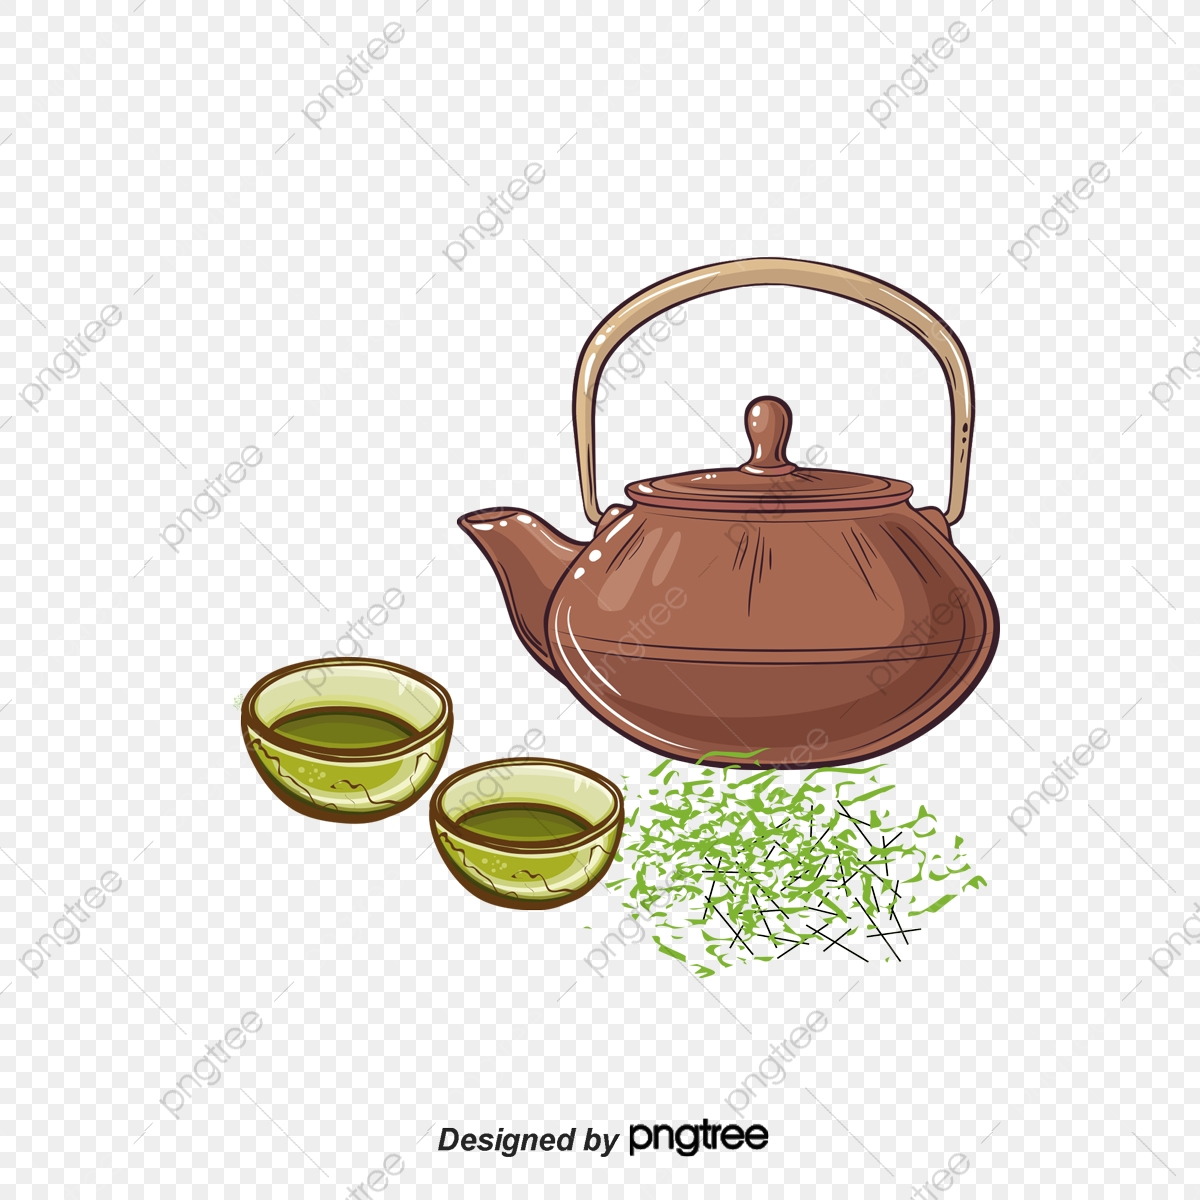 Chinese Tea Ceremony Material, Teacup, Tea, Spoon PNG Transparent.